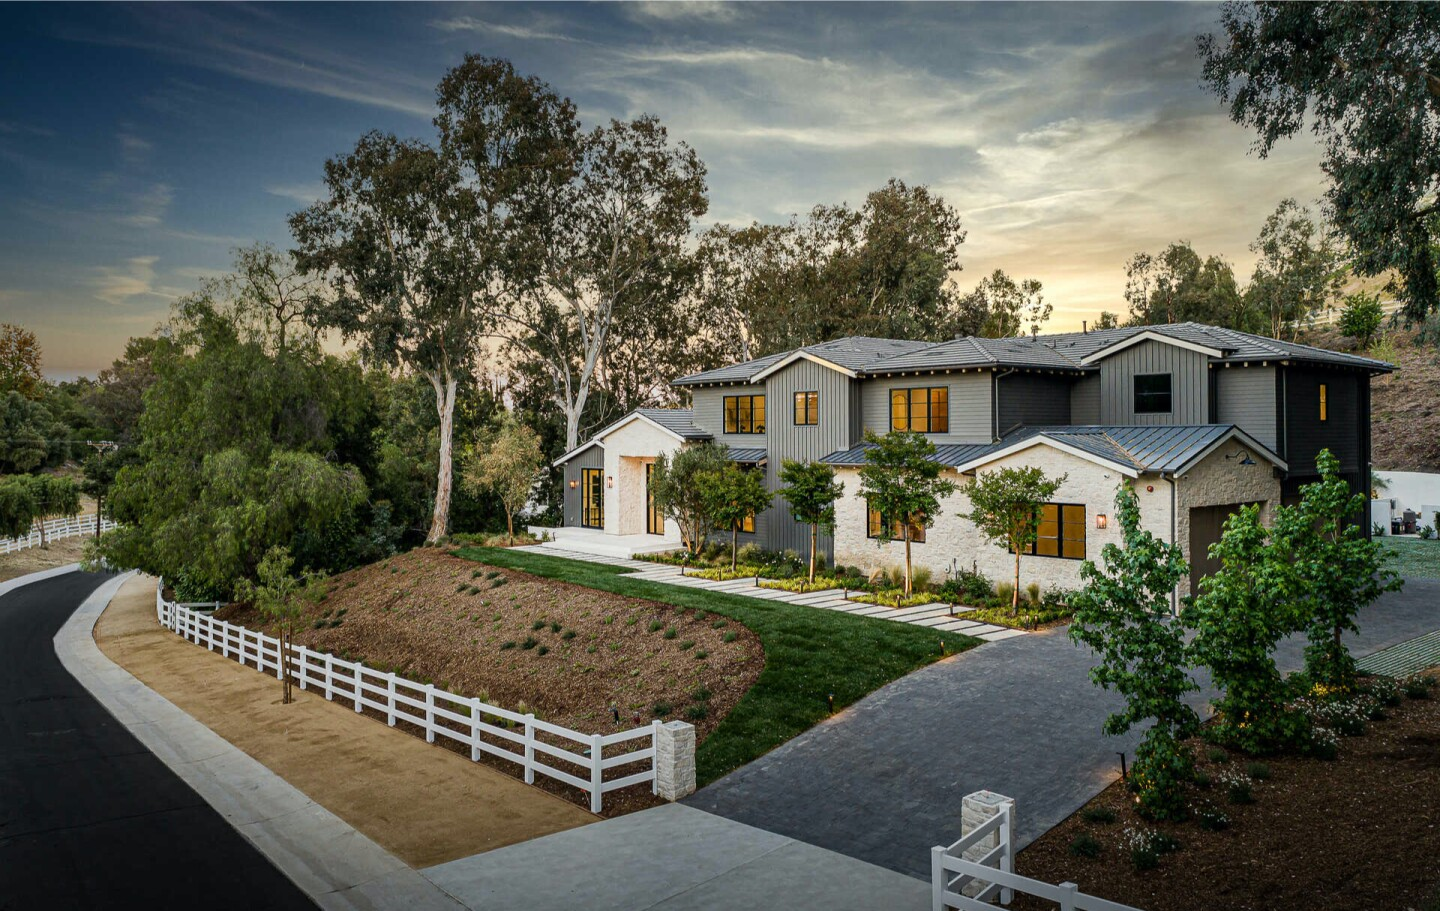 Built in 2020, the amenity-loaded home spans nearly 10,000 square feet with six bedrooms, 7.5 bathrooms, a movie theater, wine cellar and gym.